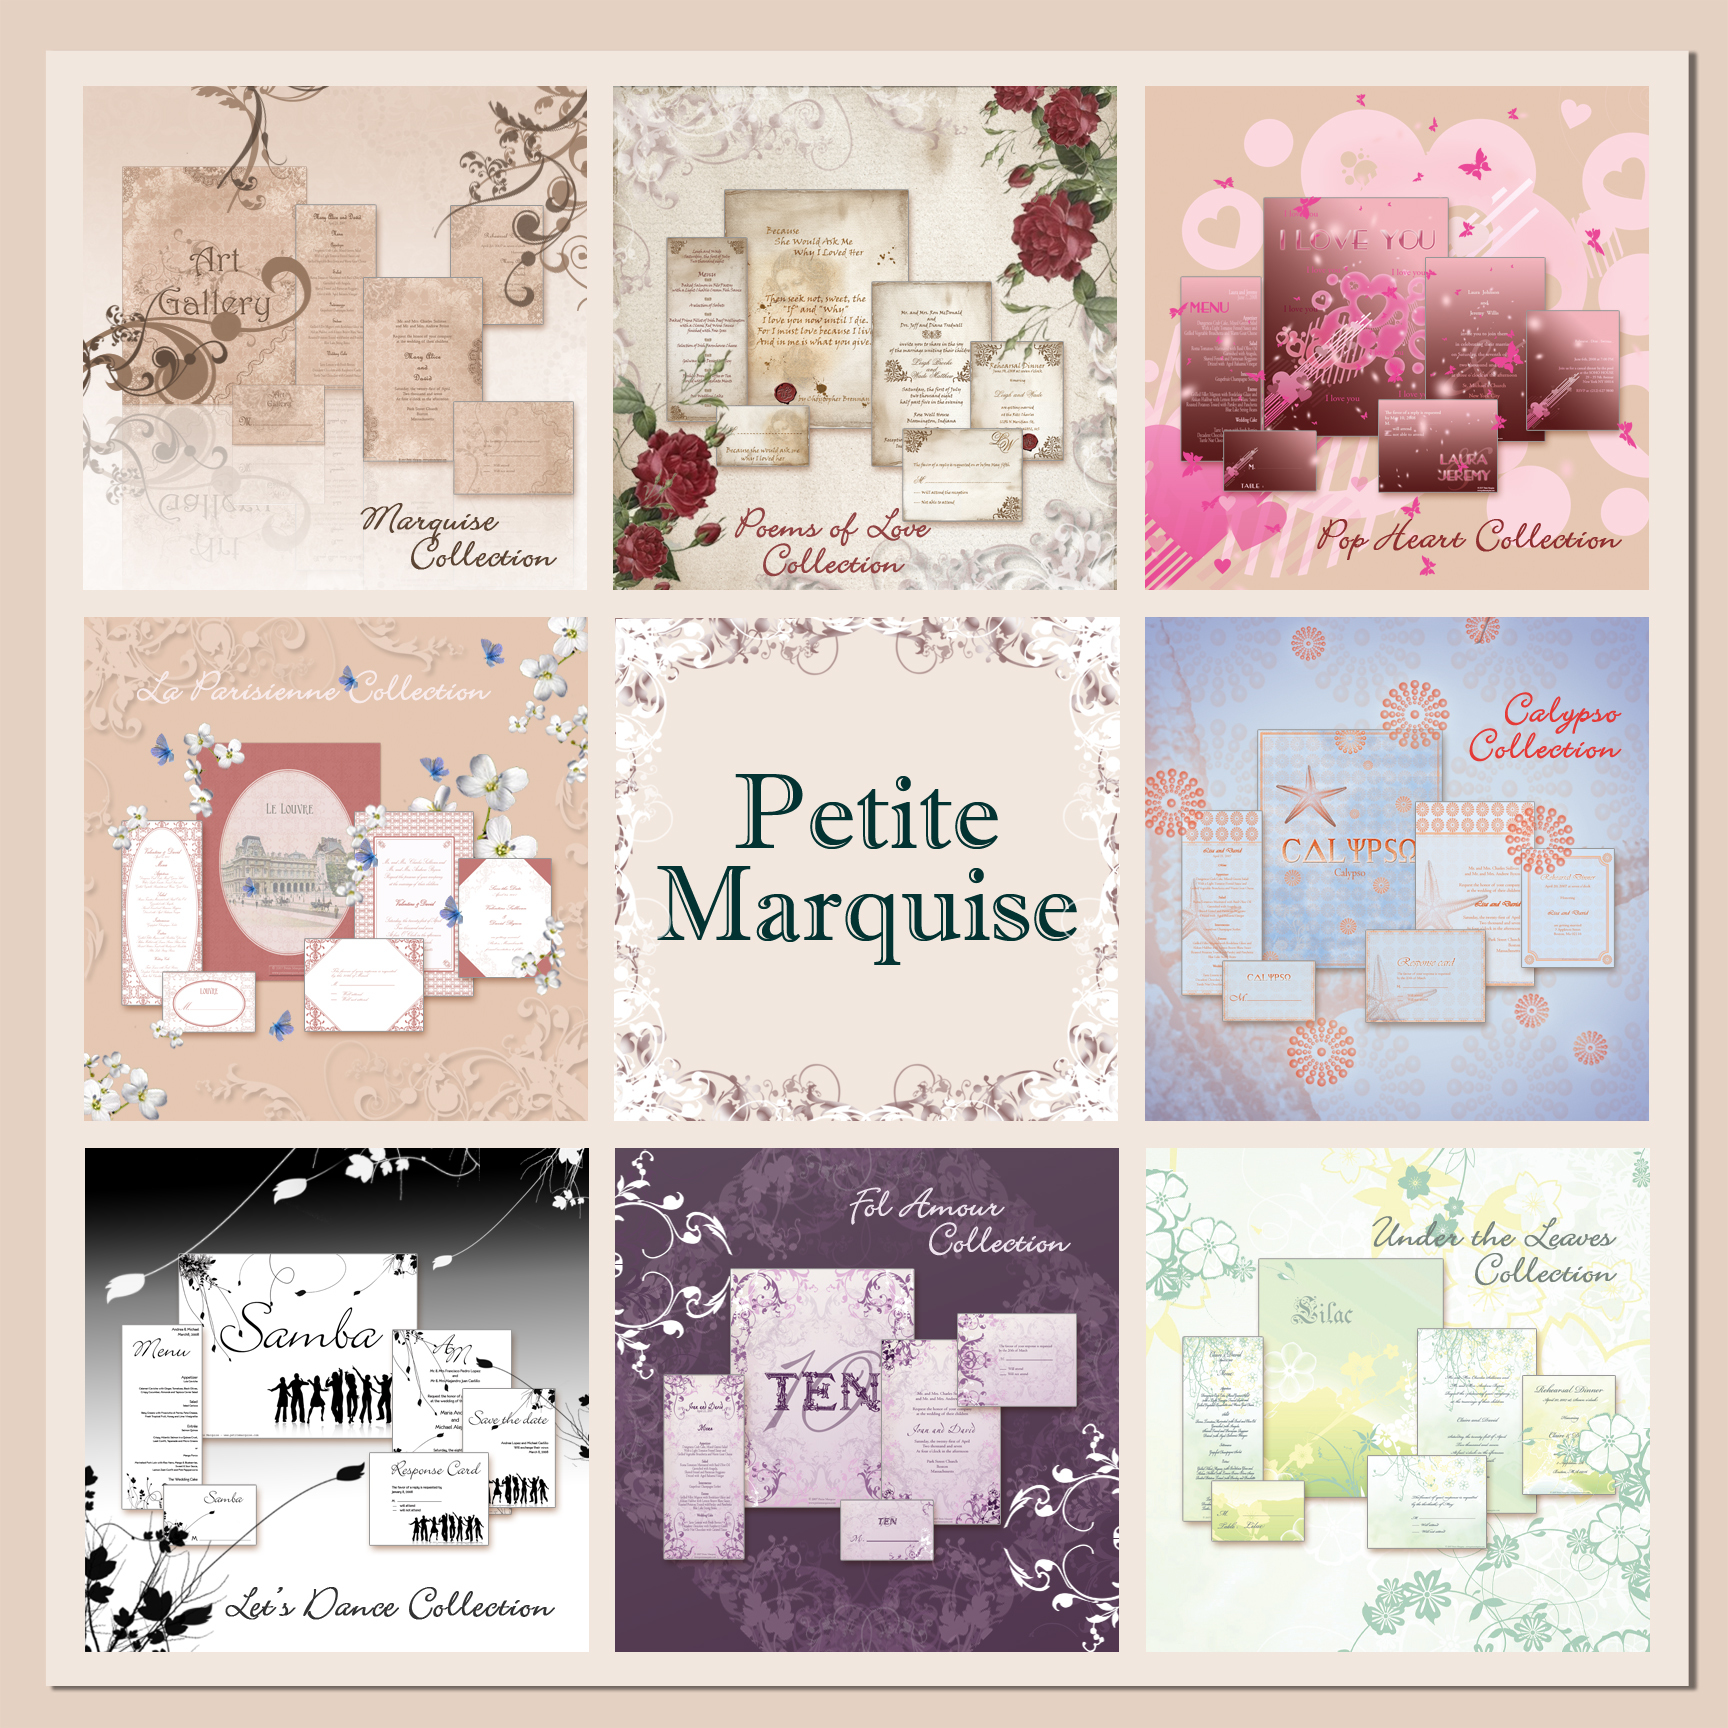 Stationery, Invitations, Save-the-Dates, Place Cards, Menu Cards, Save the date, Thank you cards, Table cards, Wedding invitations, Response cards, Rehersal dinner invitations, Reception cards, Petite marquise